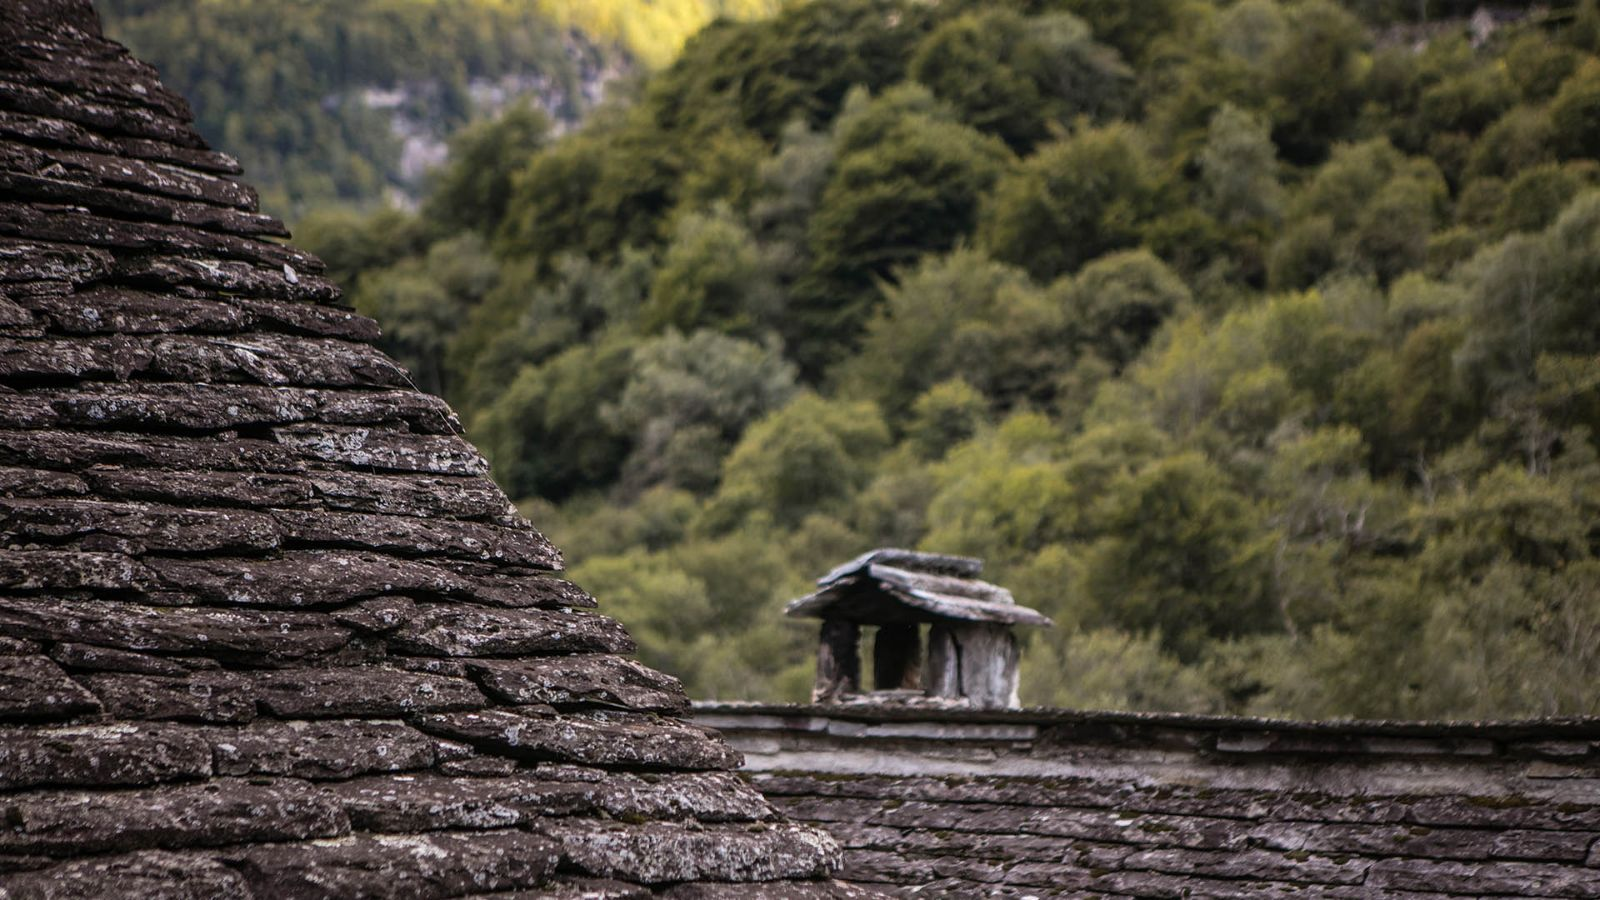 Bavona Valley, stone made roofs